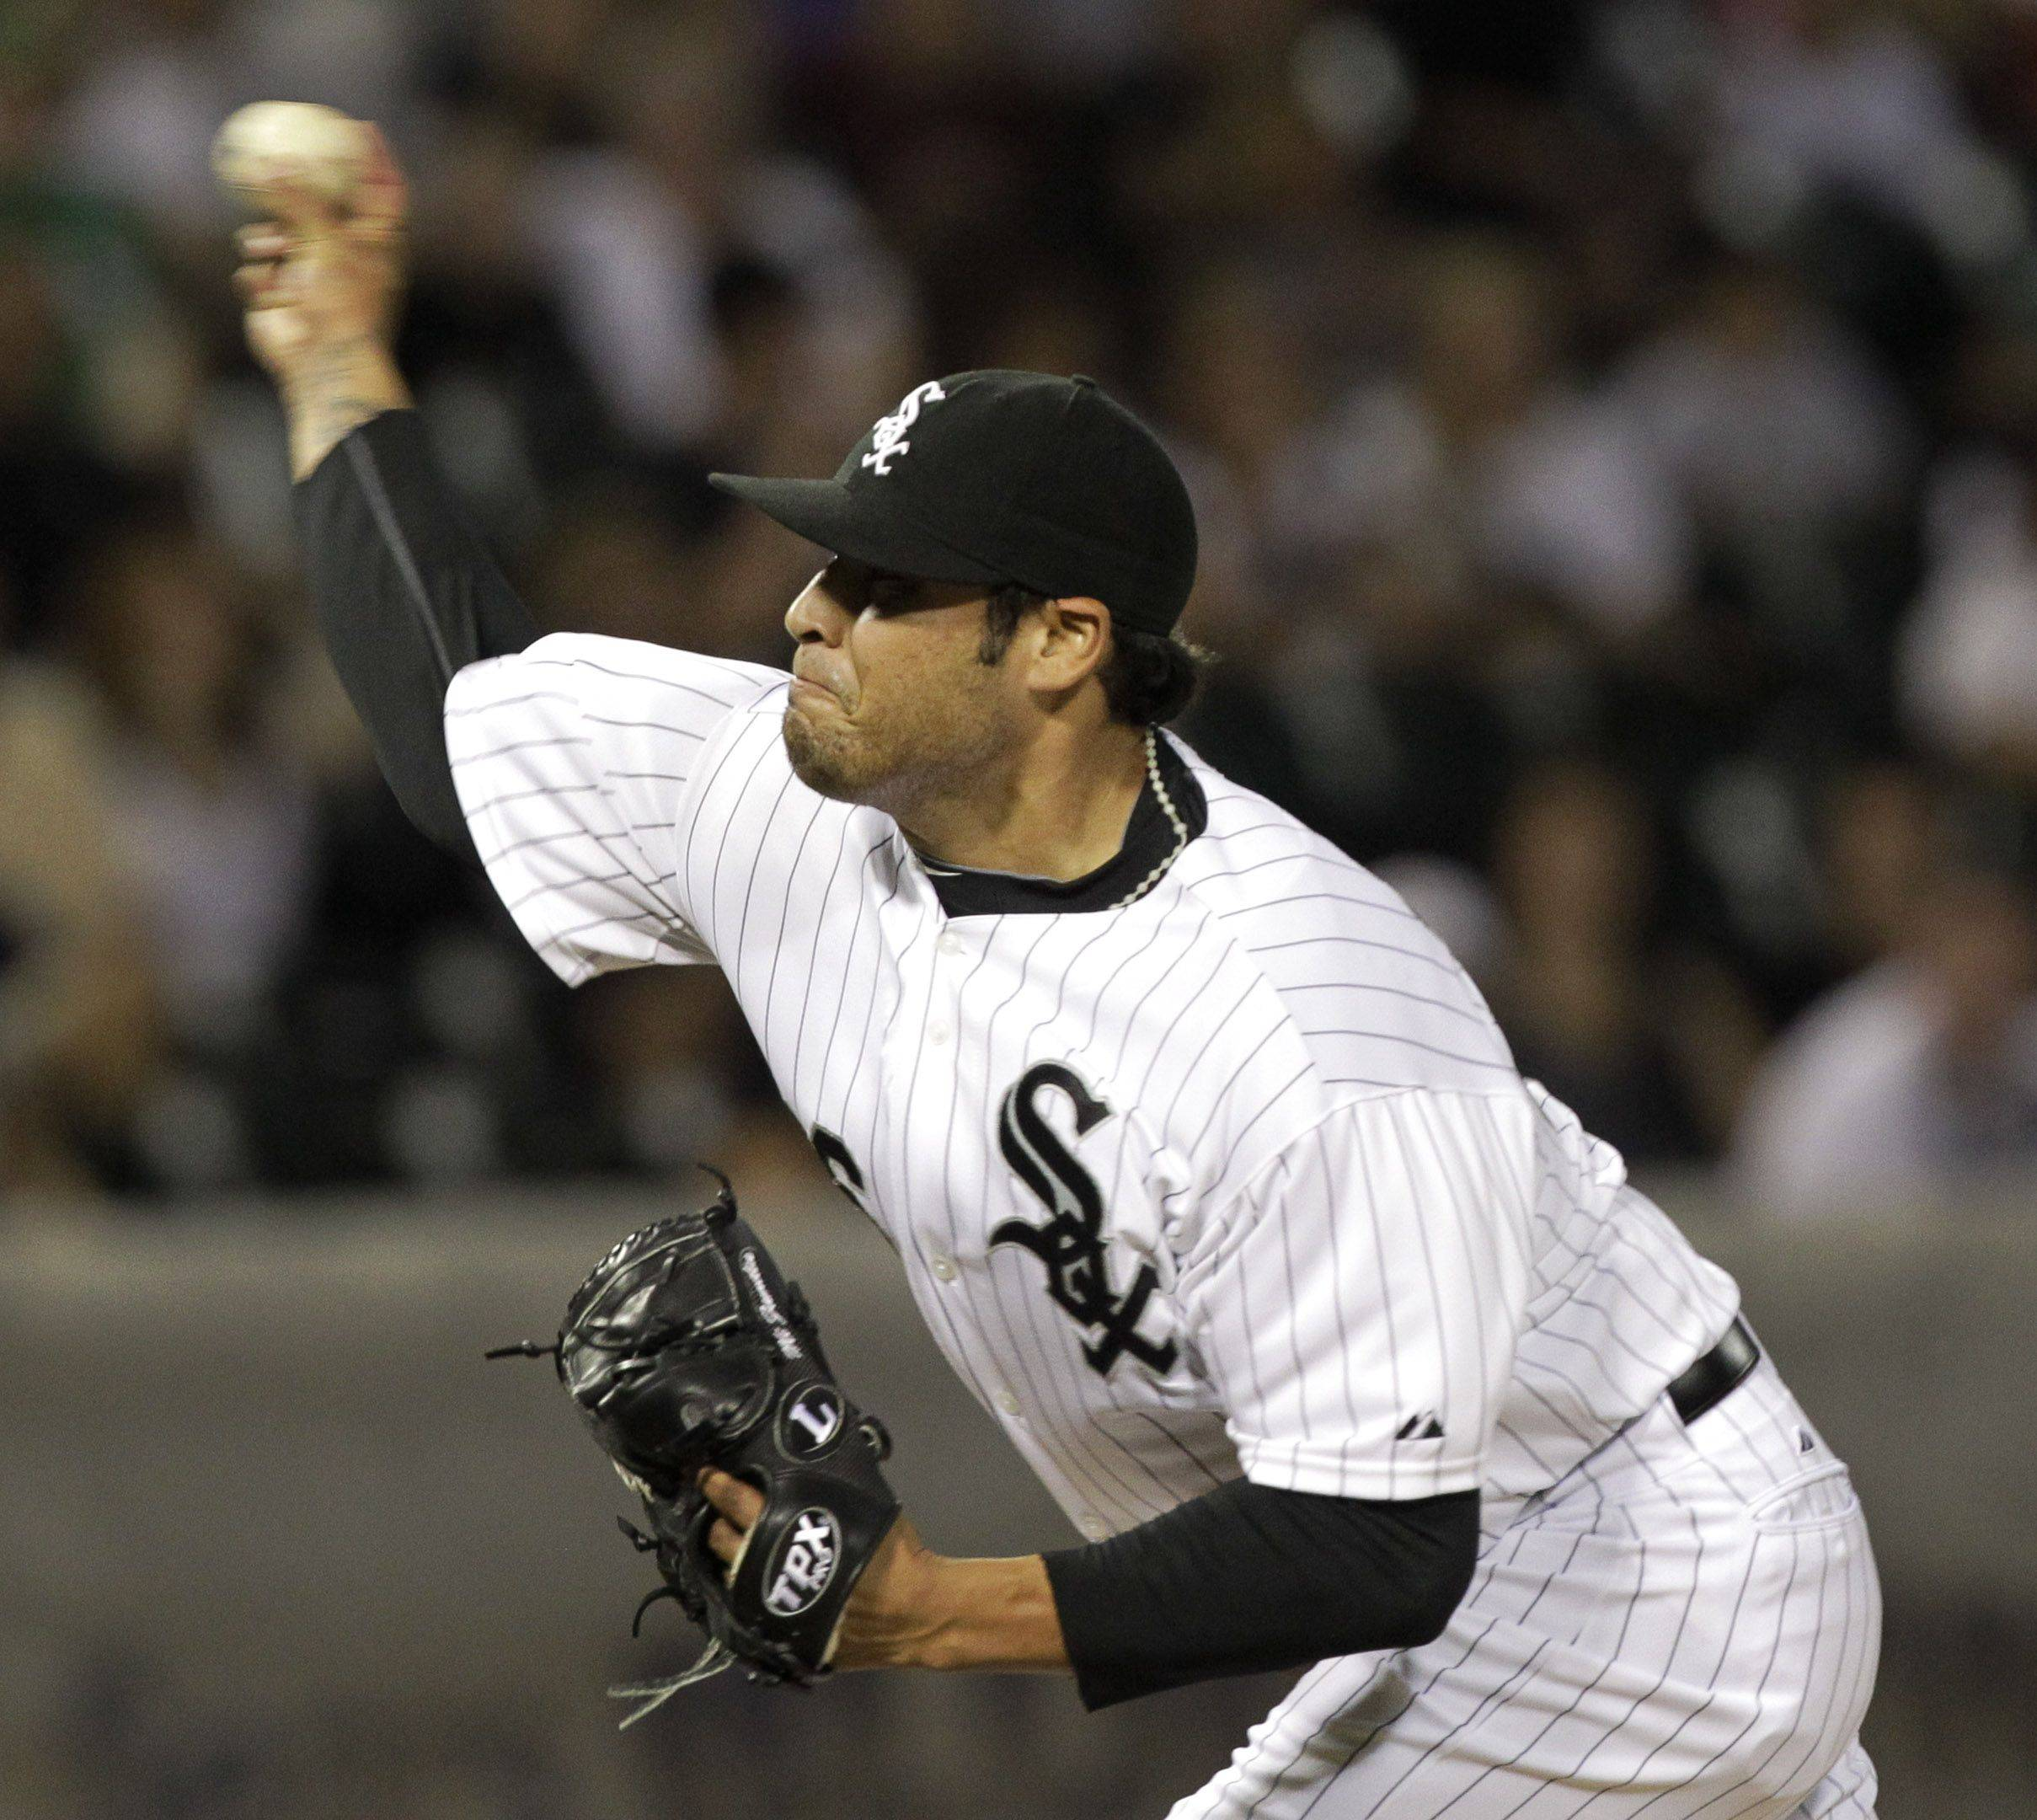 Chicago White Sox relief pitcher Sergio Santos set a team record by opening the season with 12 straight scoreless appearances.